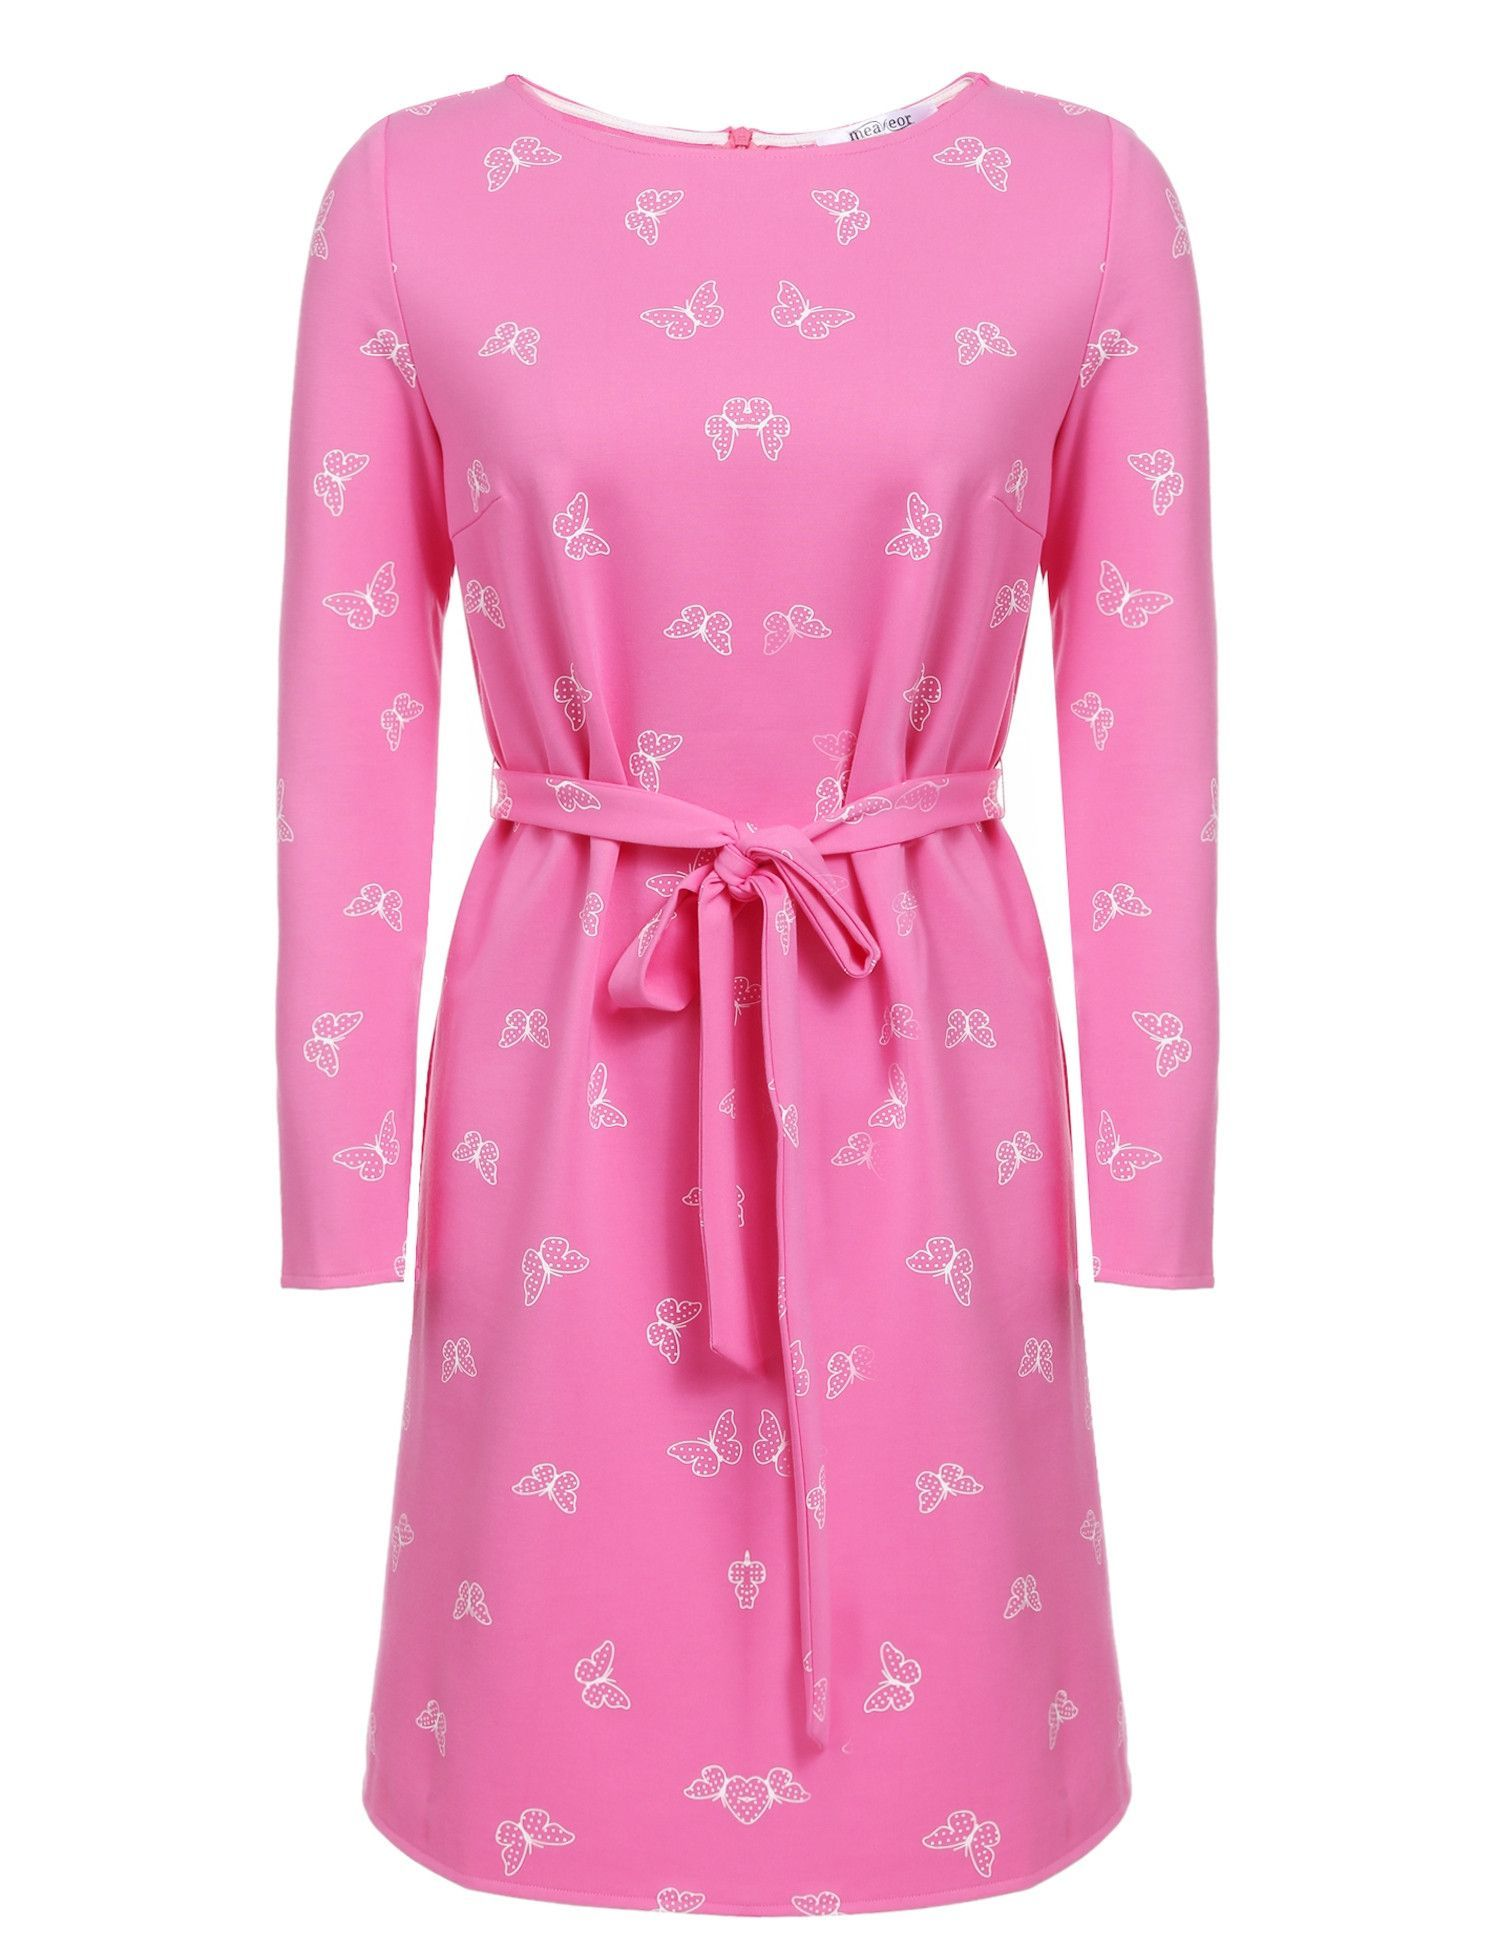 New women casual oneck long sleeve butterfly printing dress with